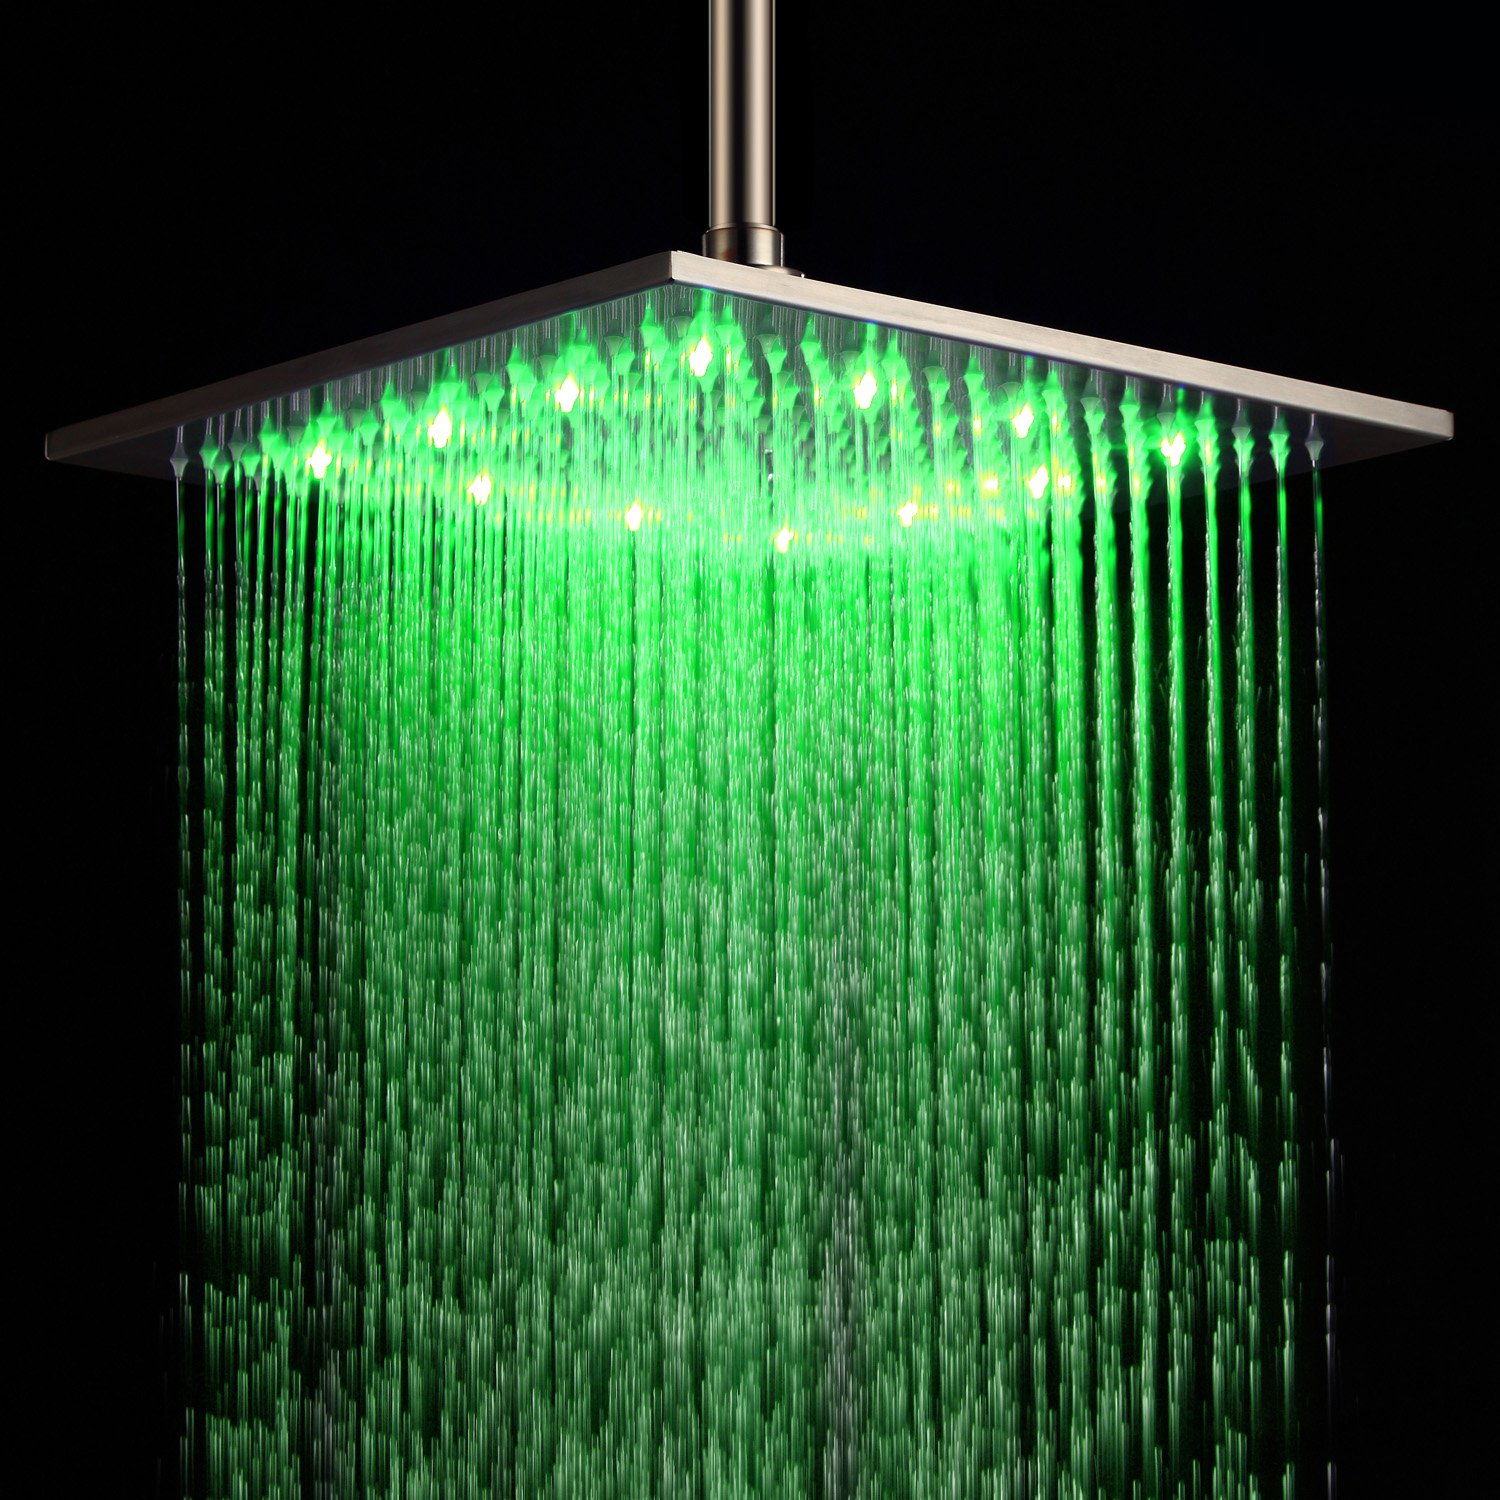 Ouku Stainless Steel Rainfall Shower Head 12 Inch Bathroom Square ...